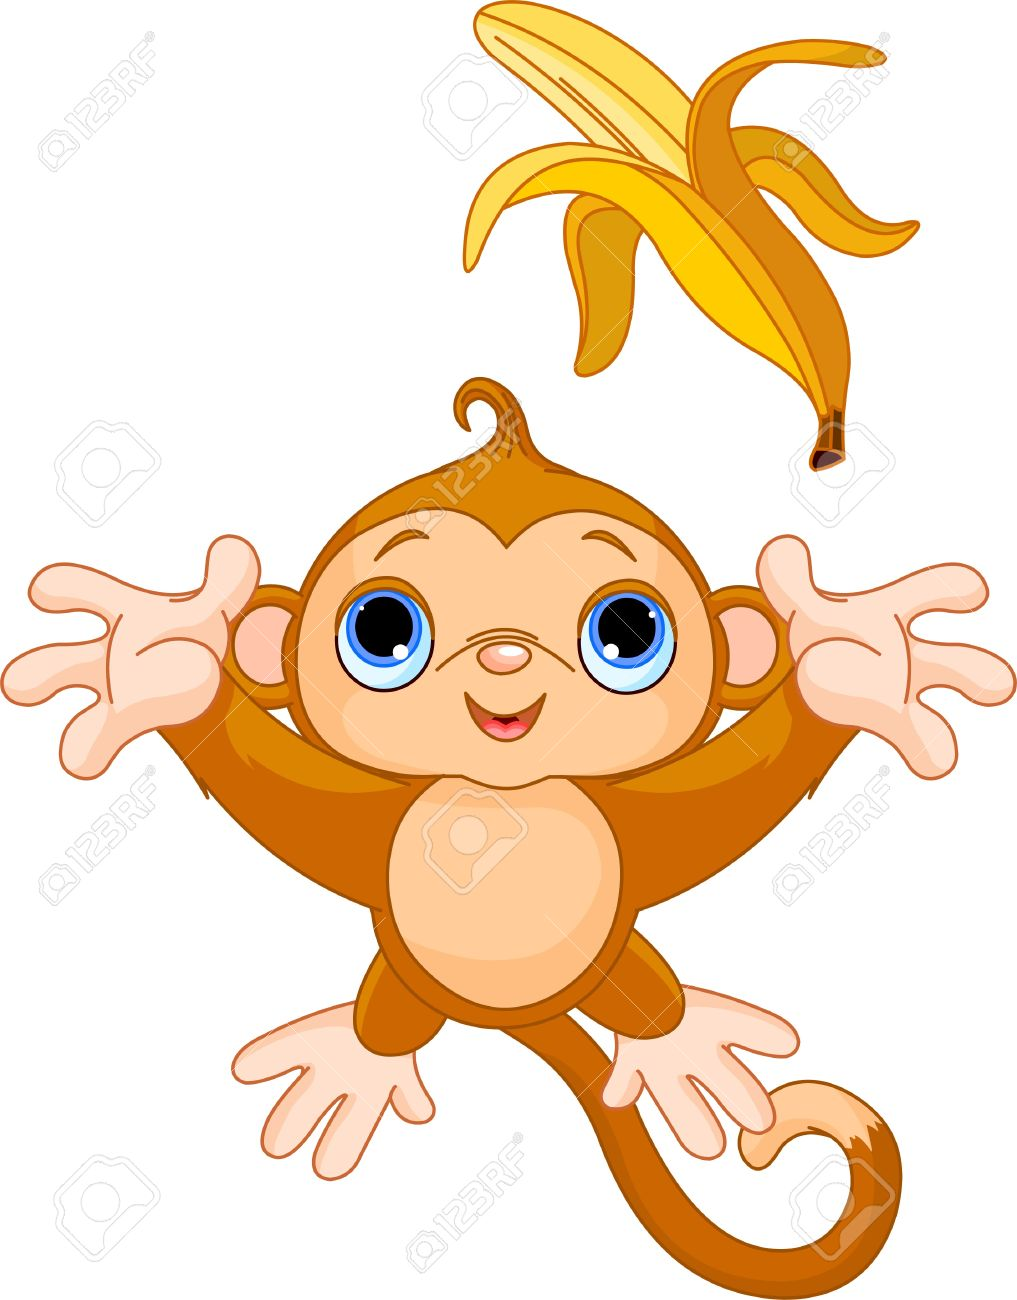 illustration of funny monkey trying to catch banana Stock Vector - 10733631